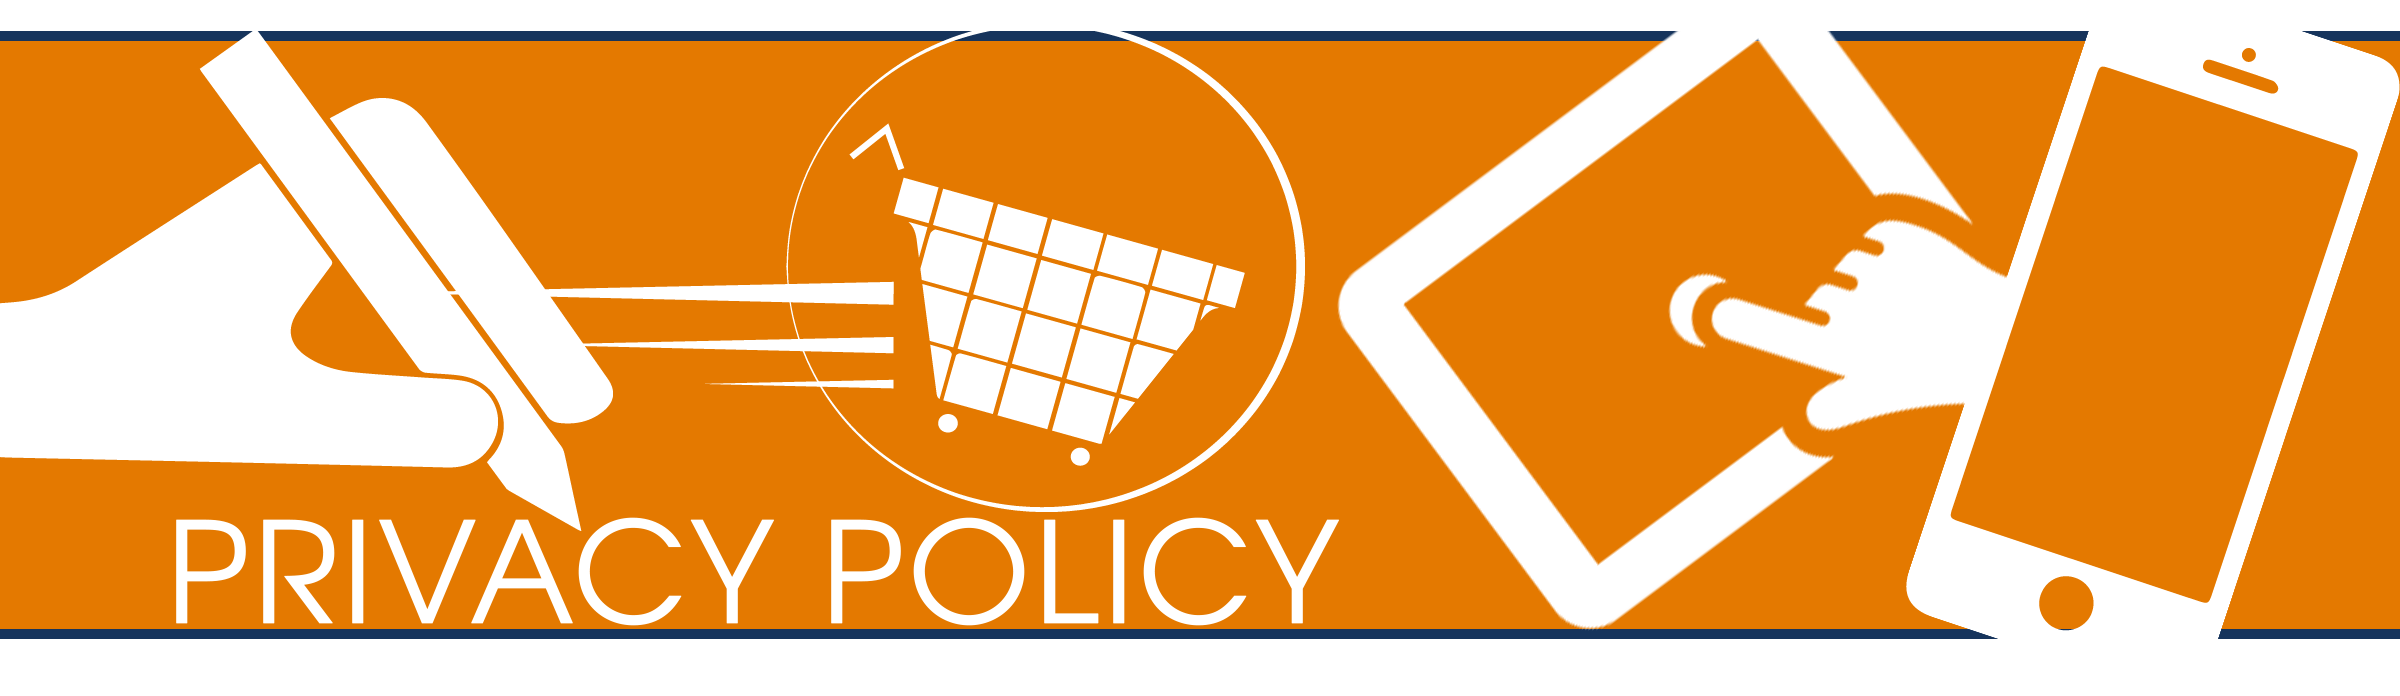 Privacy policy - Privacy Policy 26